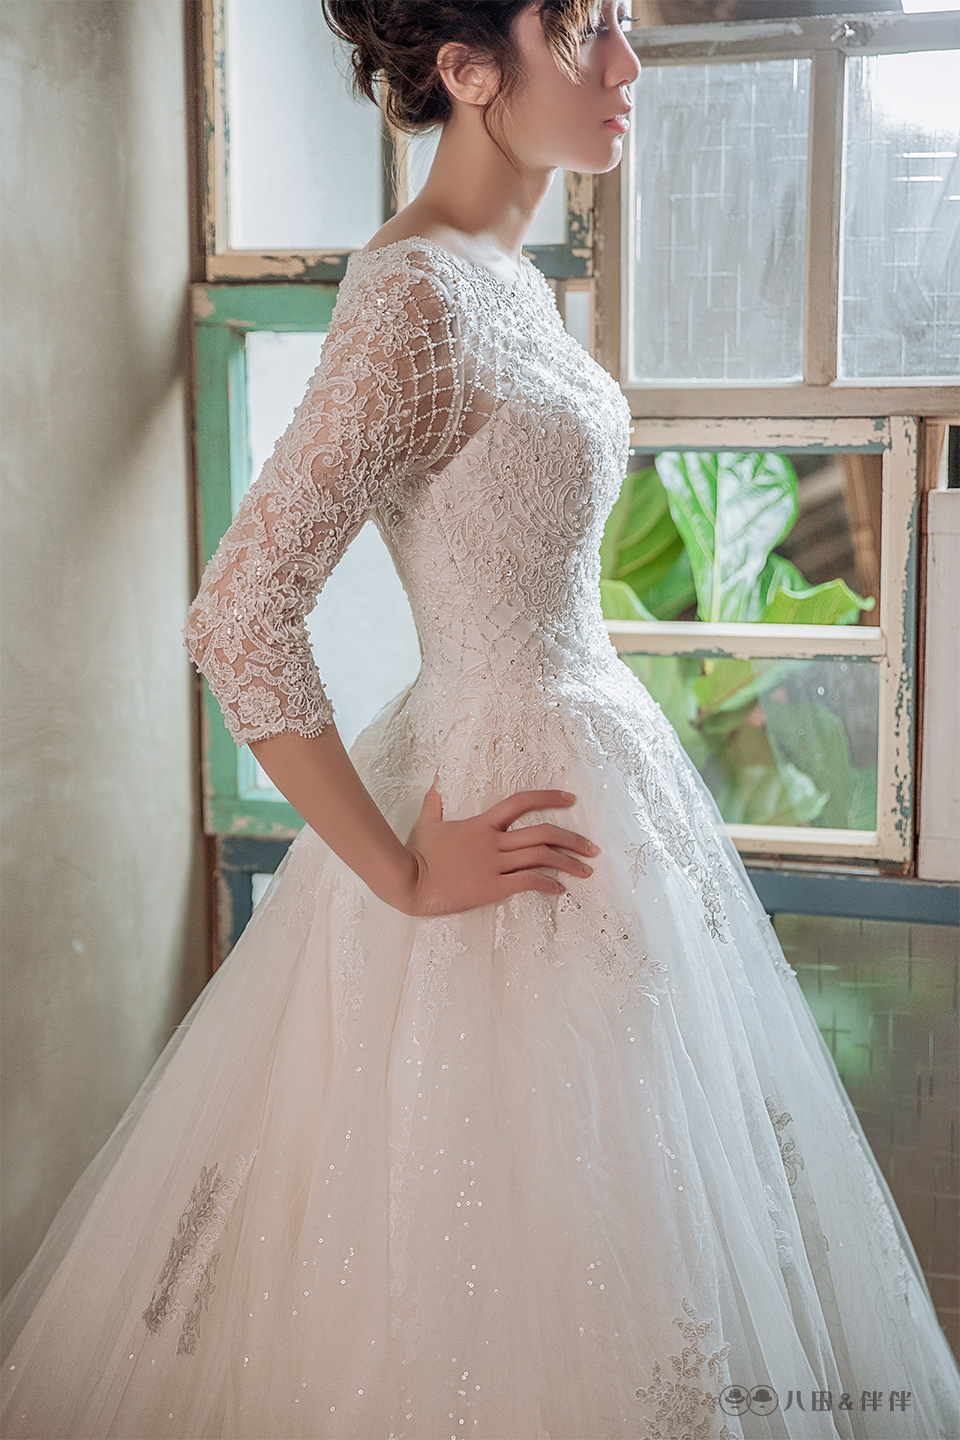 20170616-8dppwedding-dress-bridal-collection-aw013_01.jpg